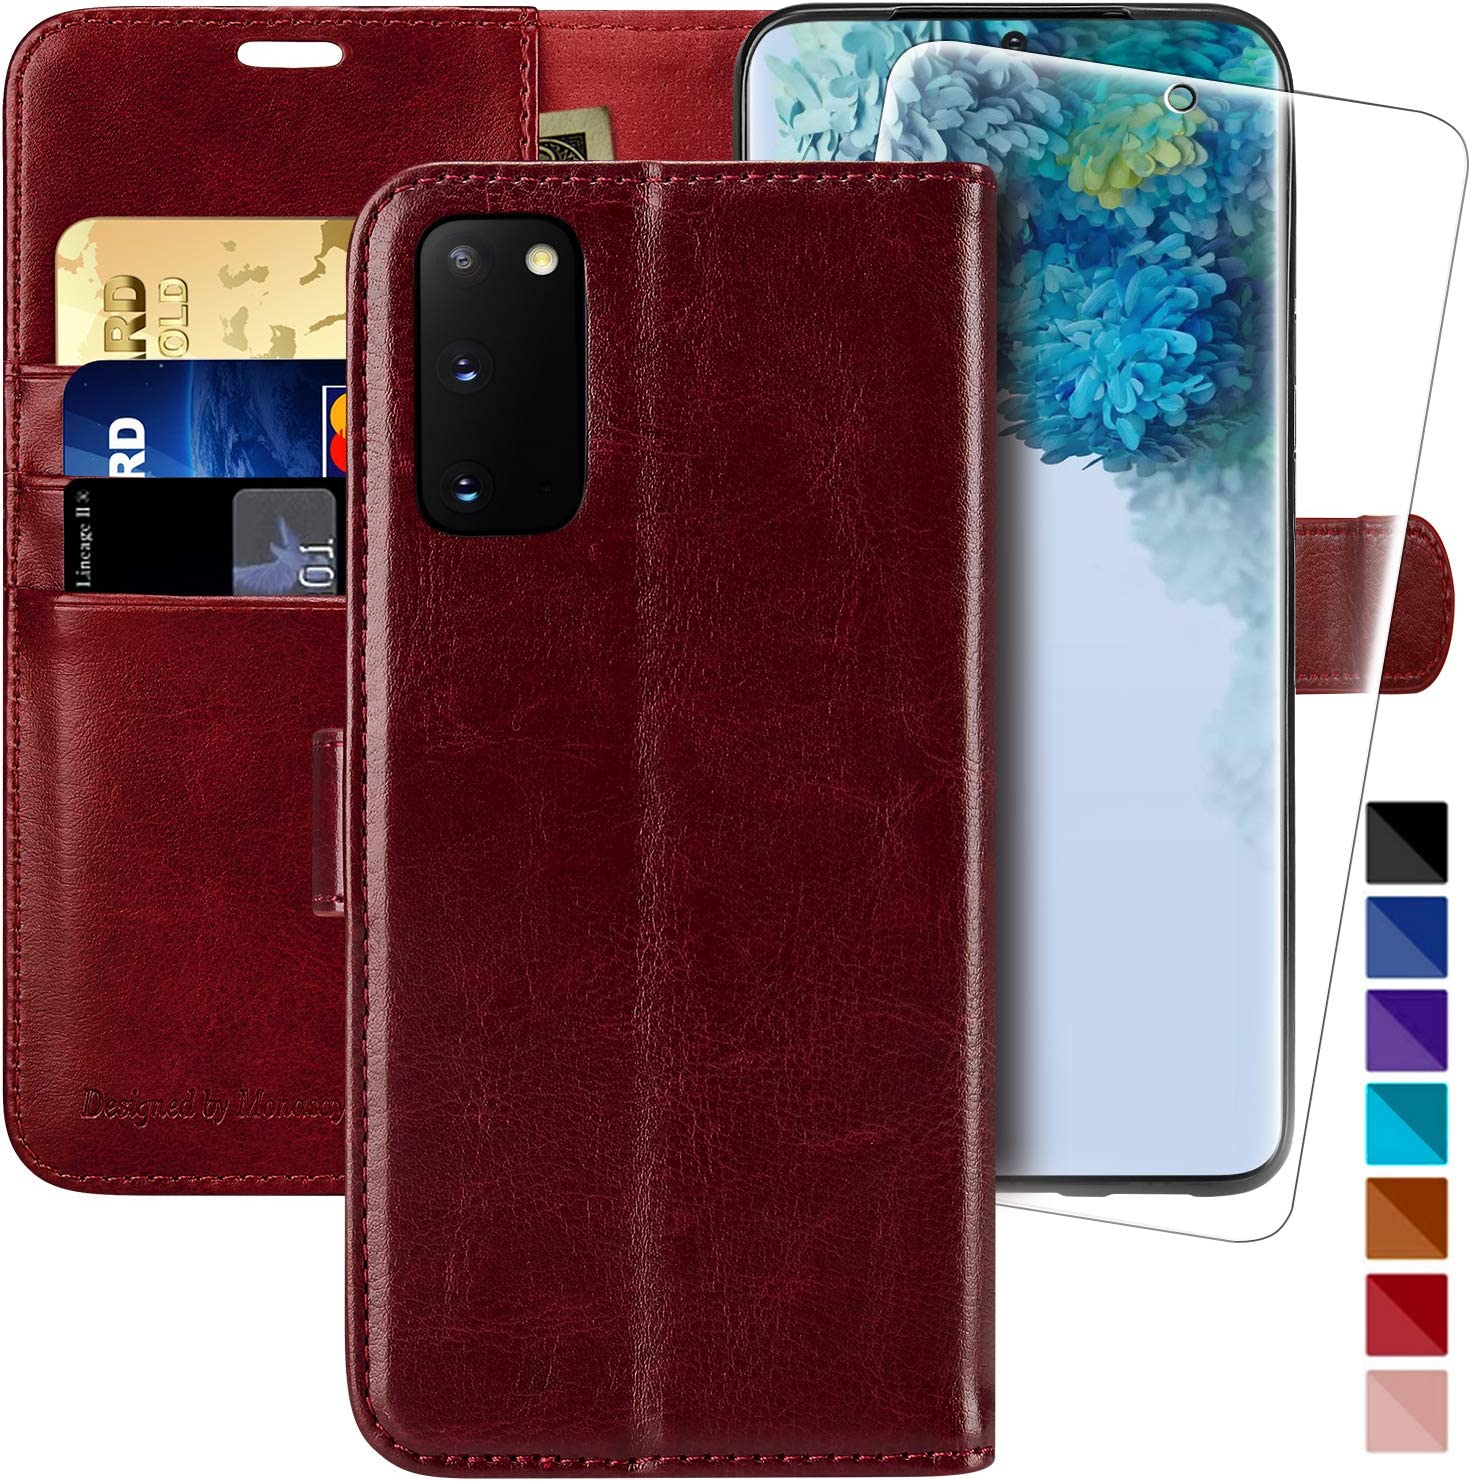 Galaxy S20 FE 5G Wallet Case,6.5 inch,MONASAY[Included Glass Screen Protector] Flip Folio Leather Cell Phone Cover with Credit Card Holder for Samsung Galaxy S20 FE 5G